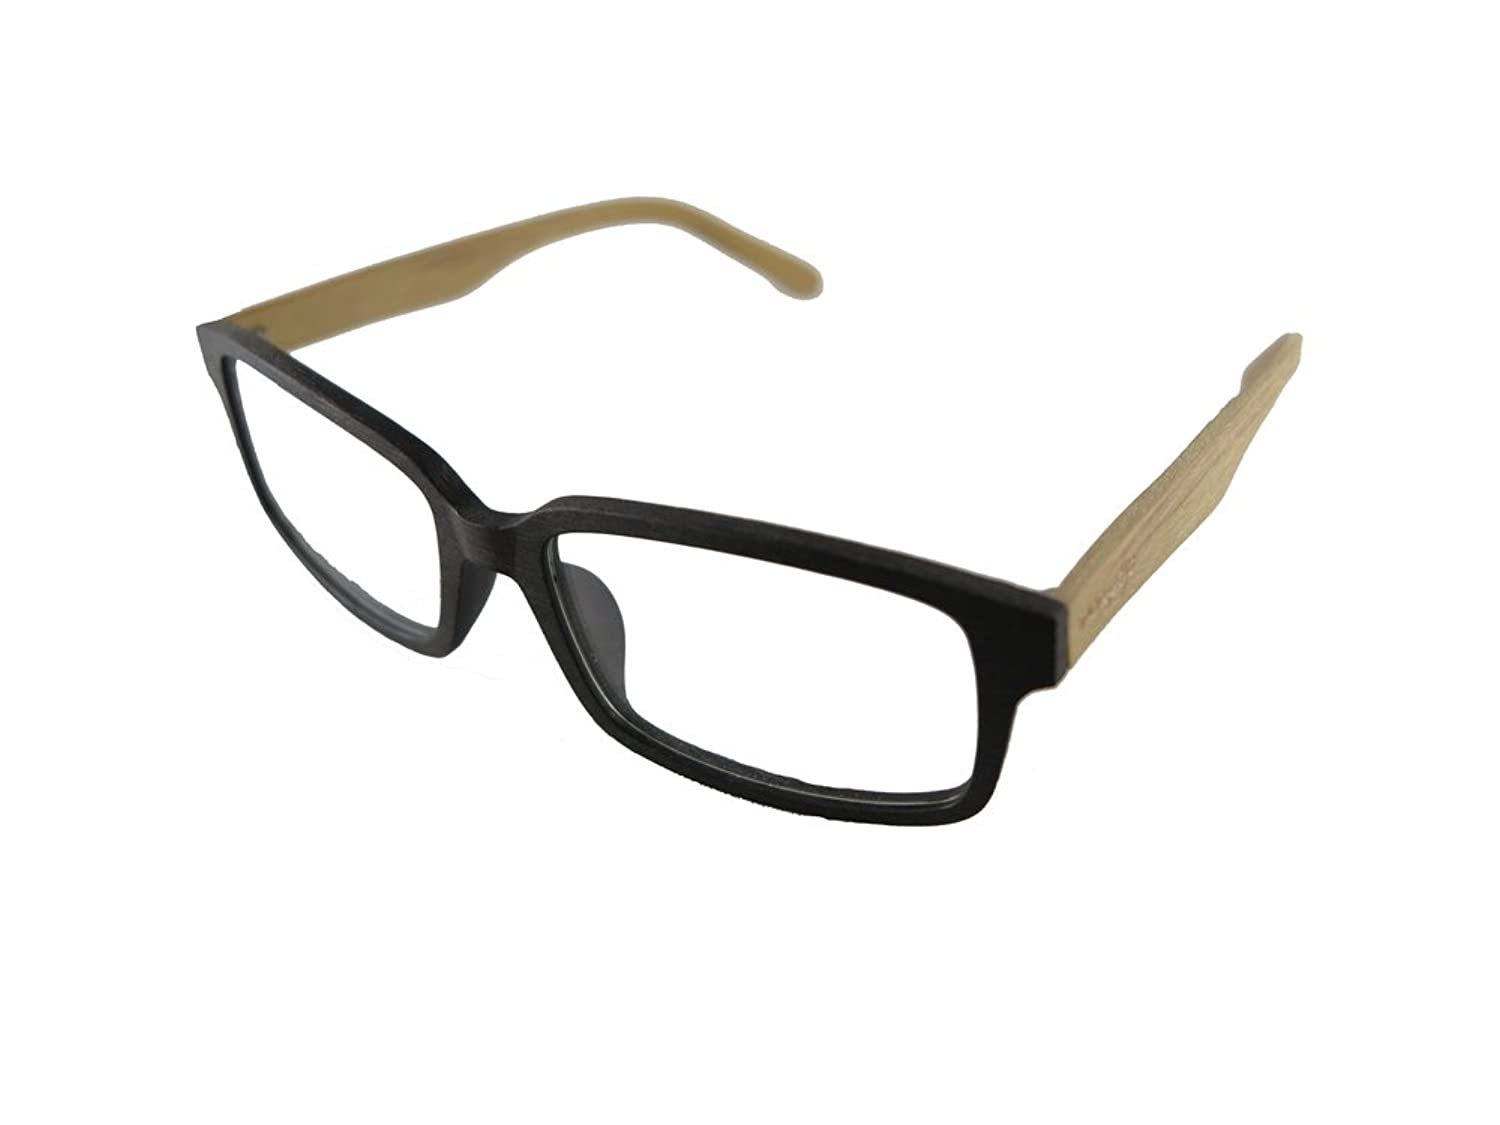 Mangekyo Vintage Wooden Glasses Frame Medium Rectanglar